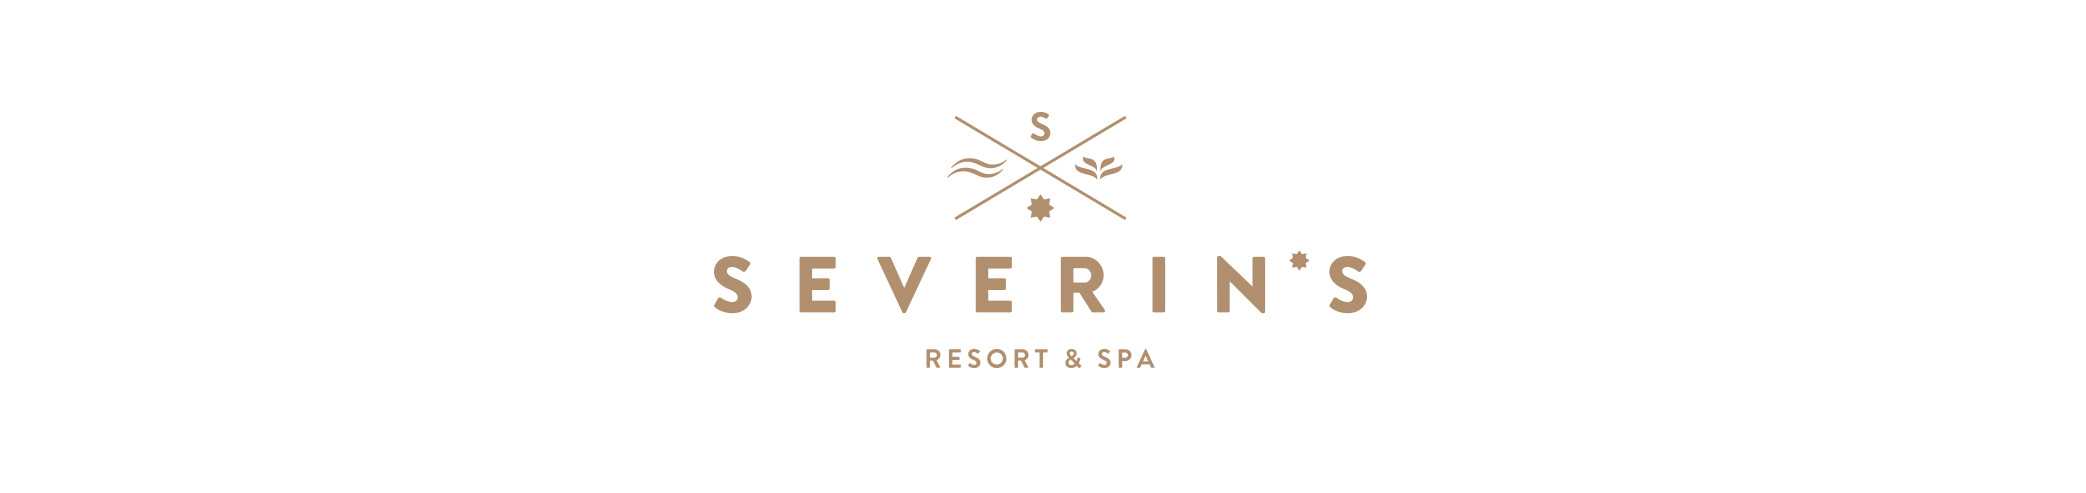 Severin's Resort und Spa Logo